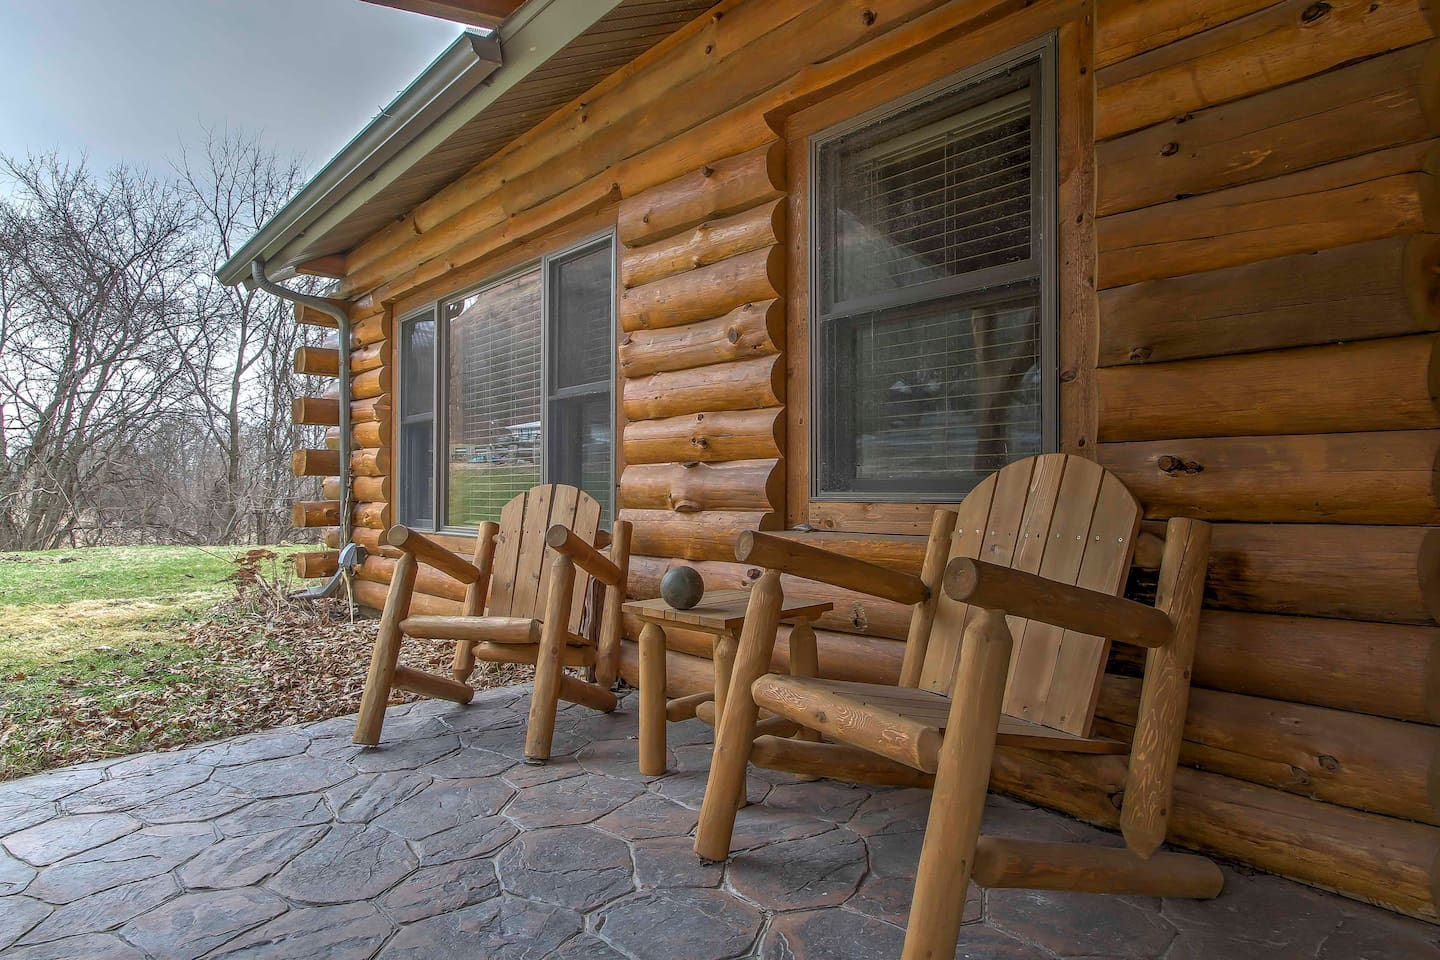 Relax at this 2-bedroom, 1-bathroom vacation rental cabin in Ferryville!